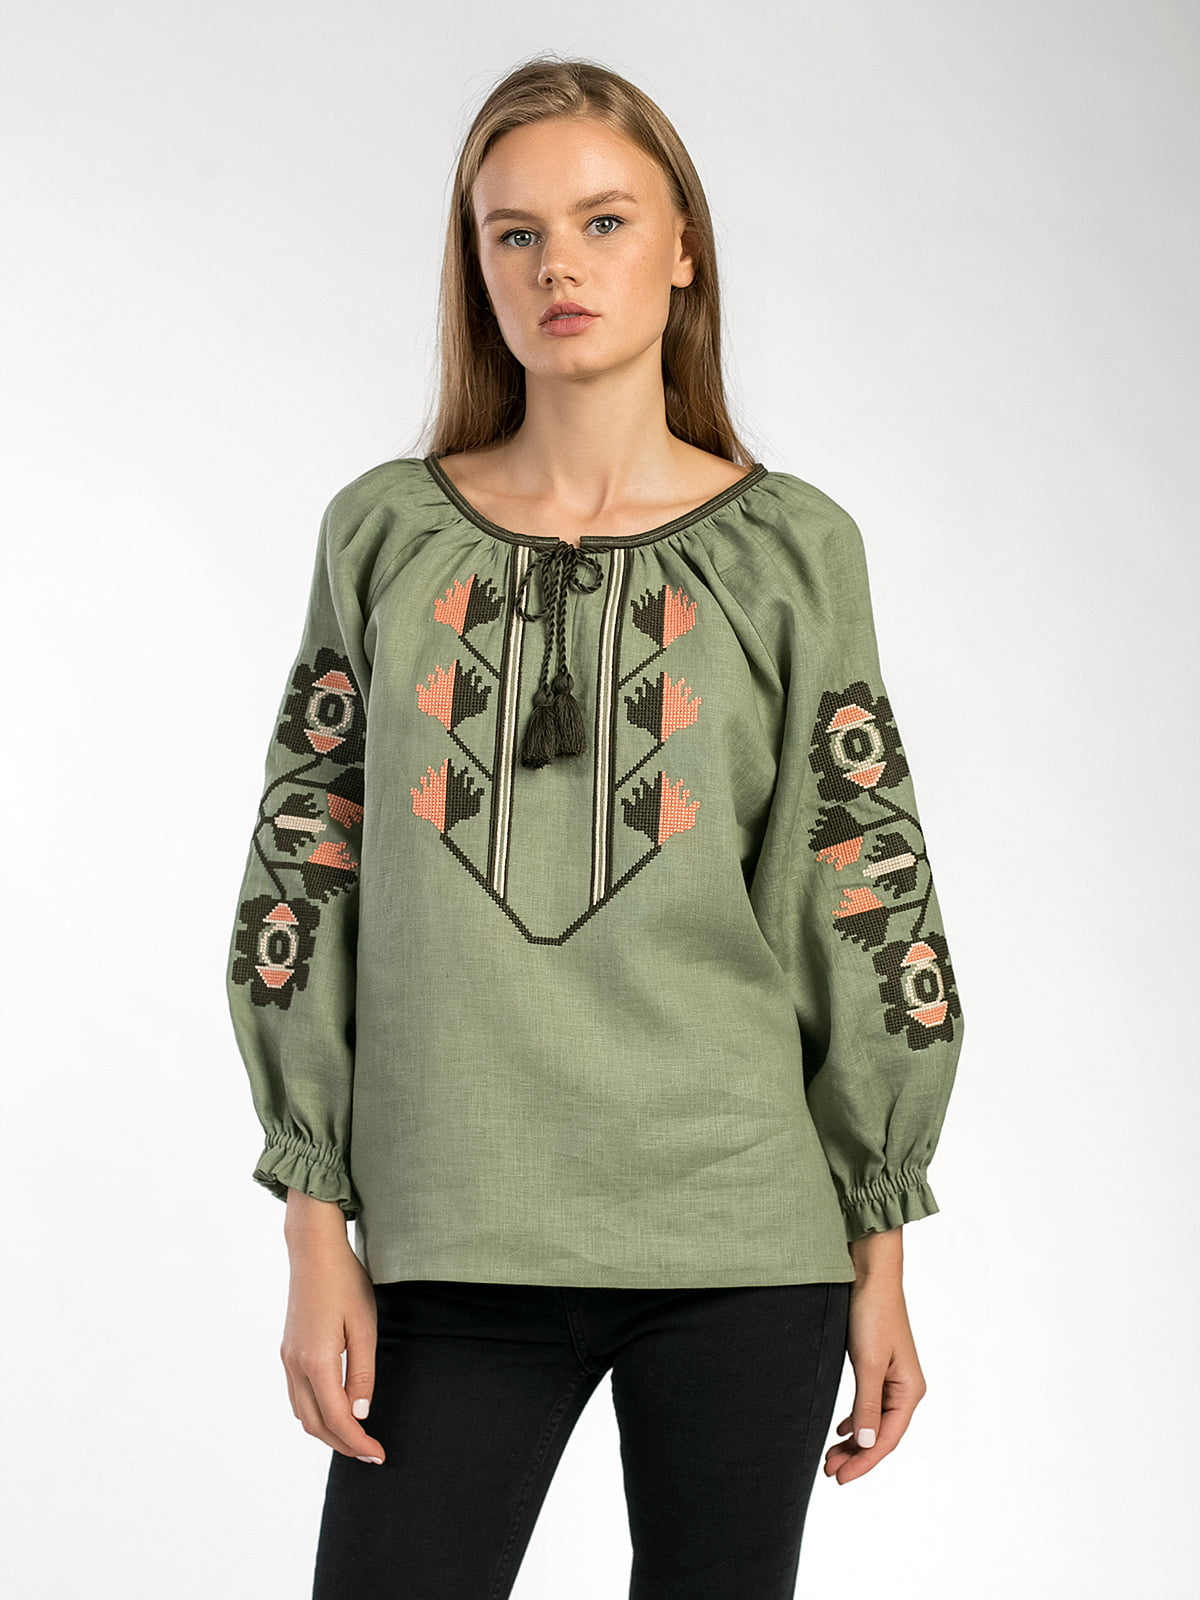 Embroidered shirt in olive linen Werba